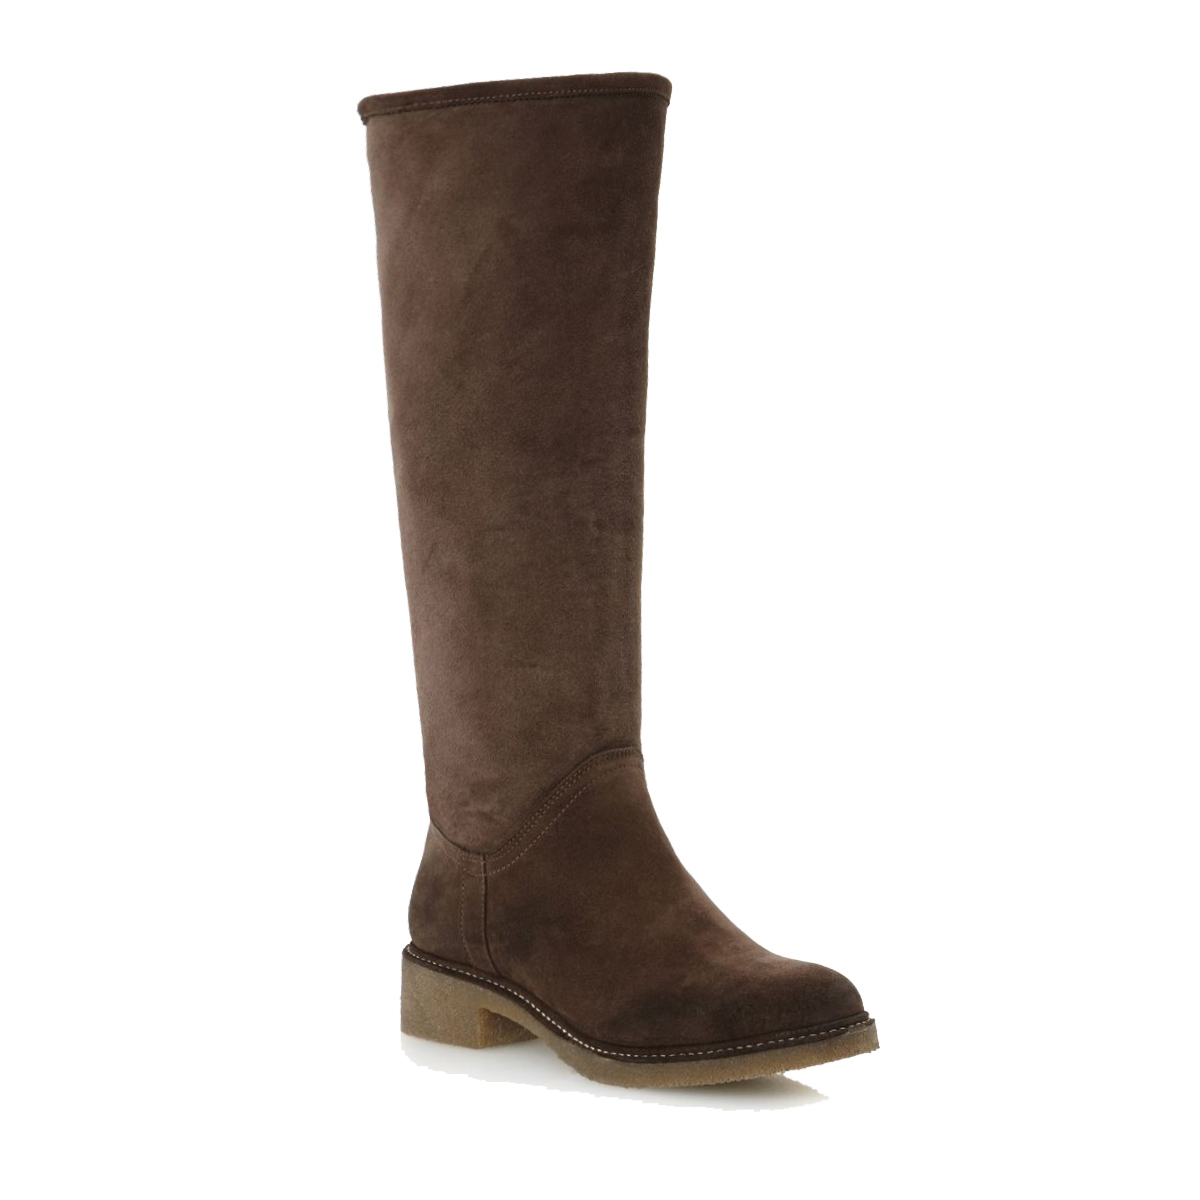 NEW-DUNE-LADIES-TANG-WOMENS-SUEDE-FAUX-FUR-LINED-KNEE-HIGH-FLAT-BOOTS-SIZE-3-8